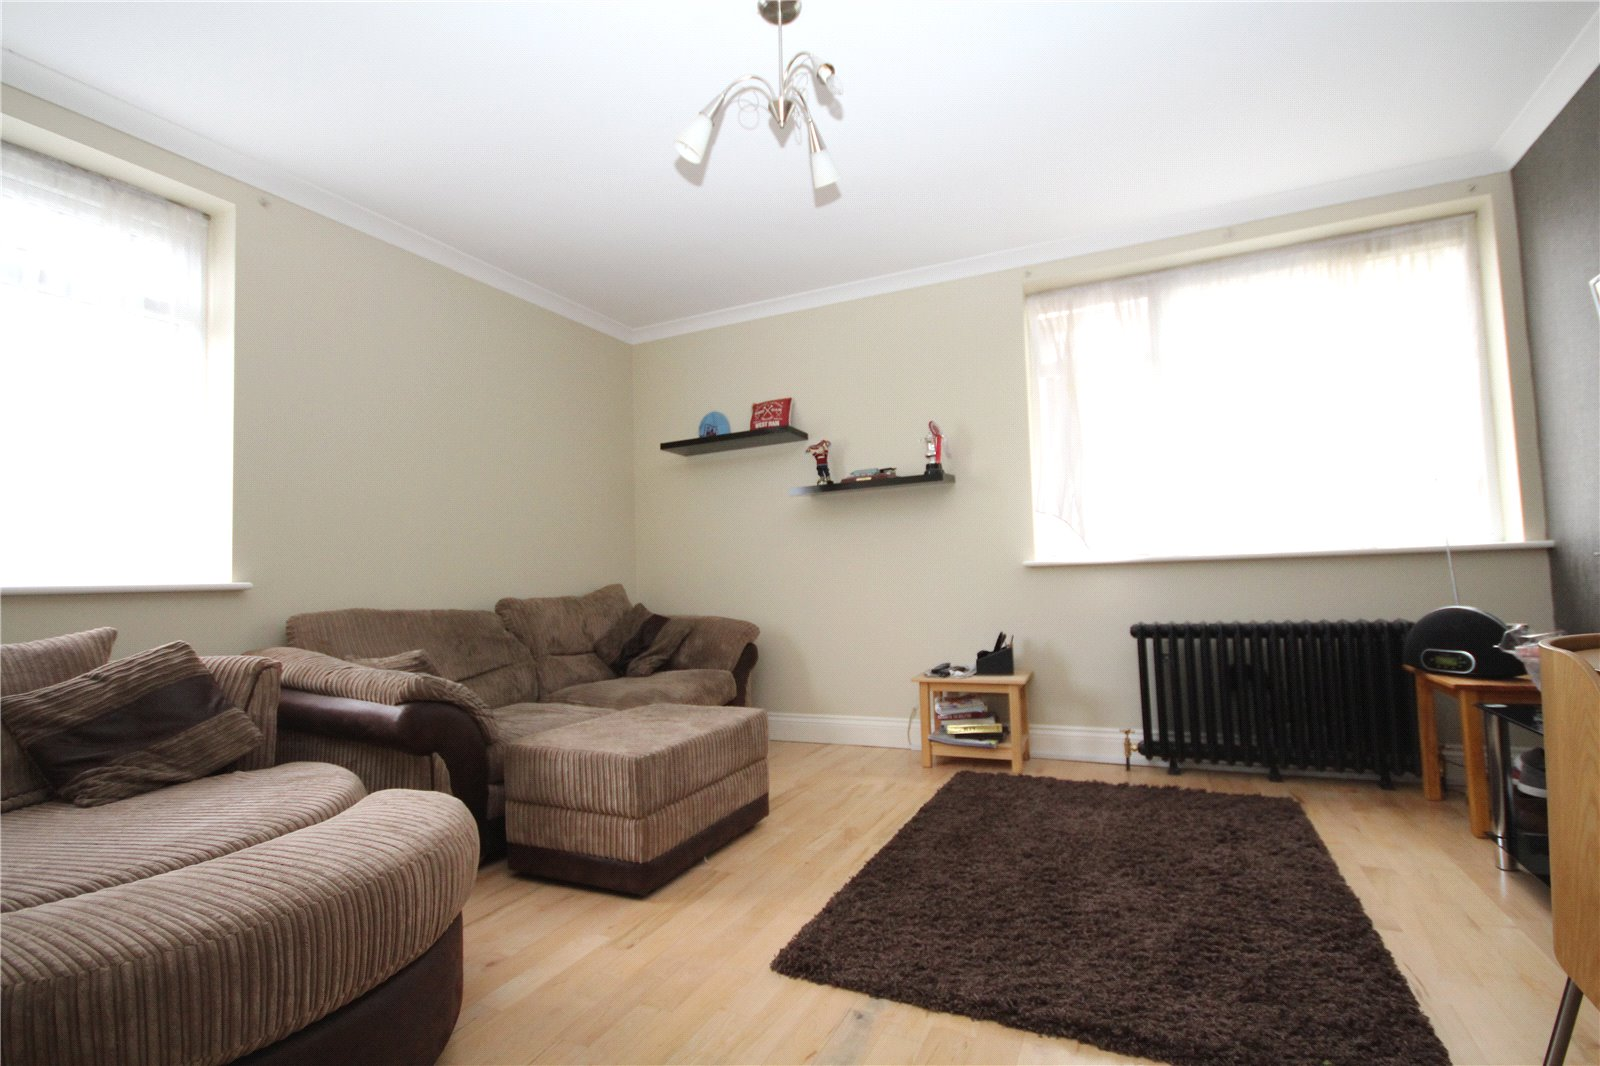 Burns House, Axminster Crescent, Welling, Kent, DA16